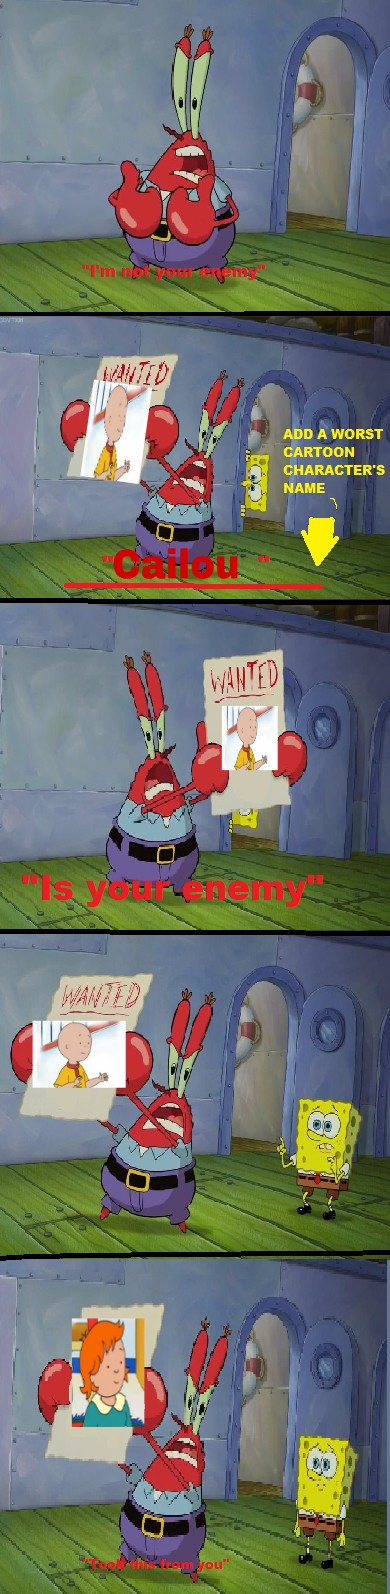 Mr  Krabs Reveals Cailou As The Enemy Not Rosie  by